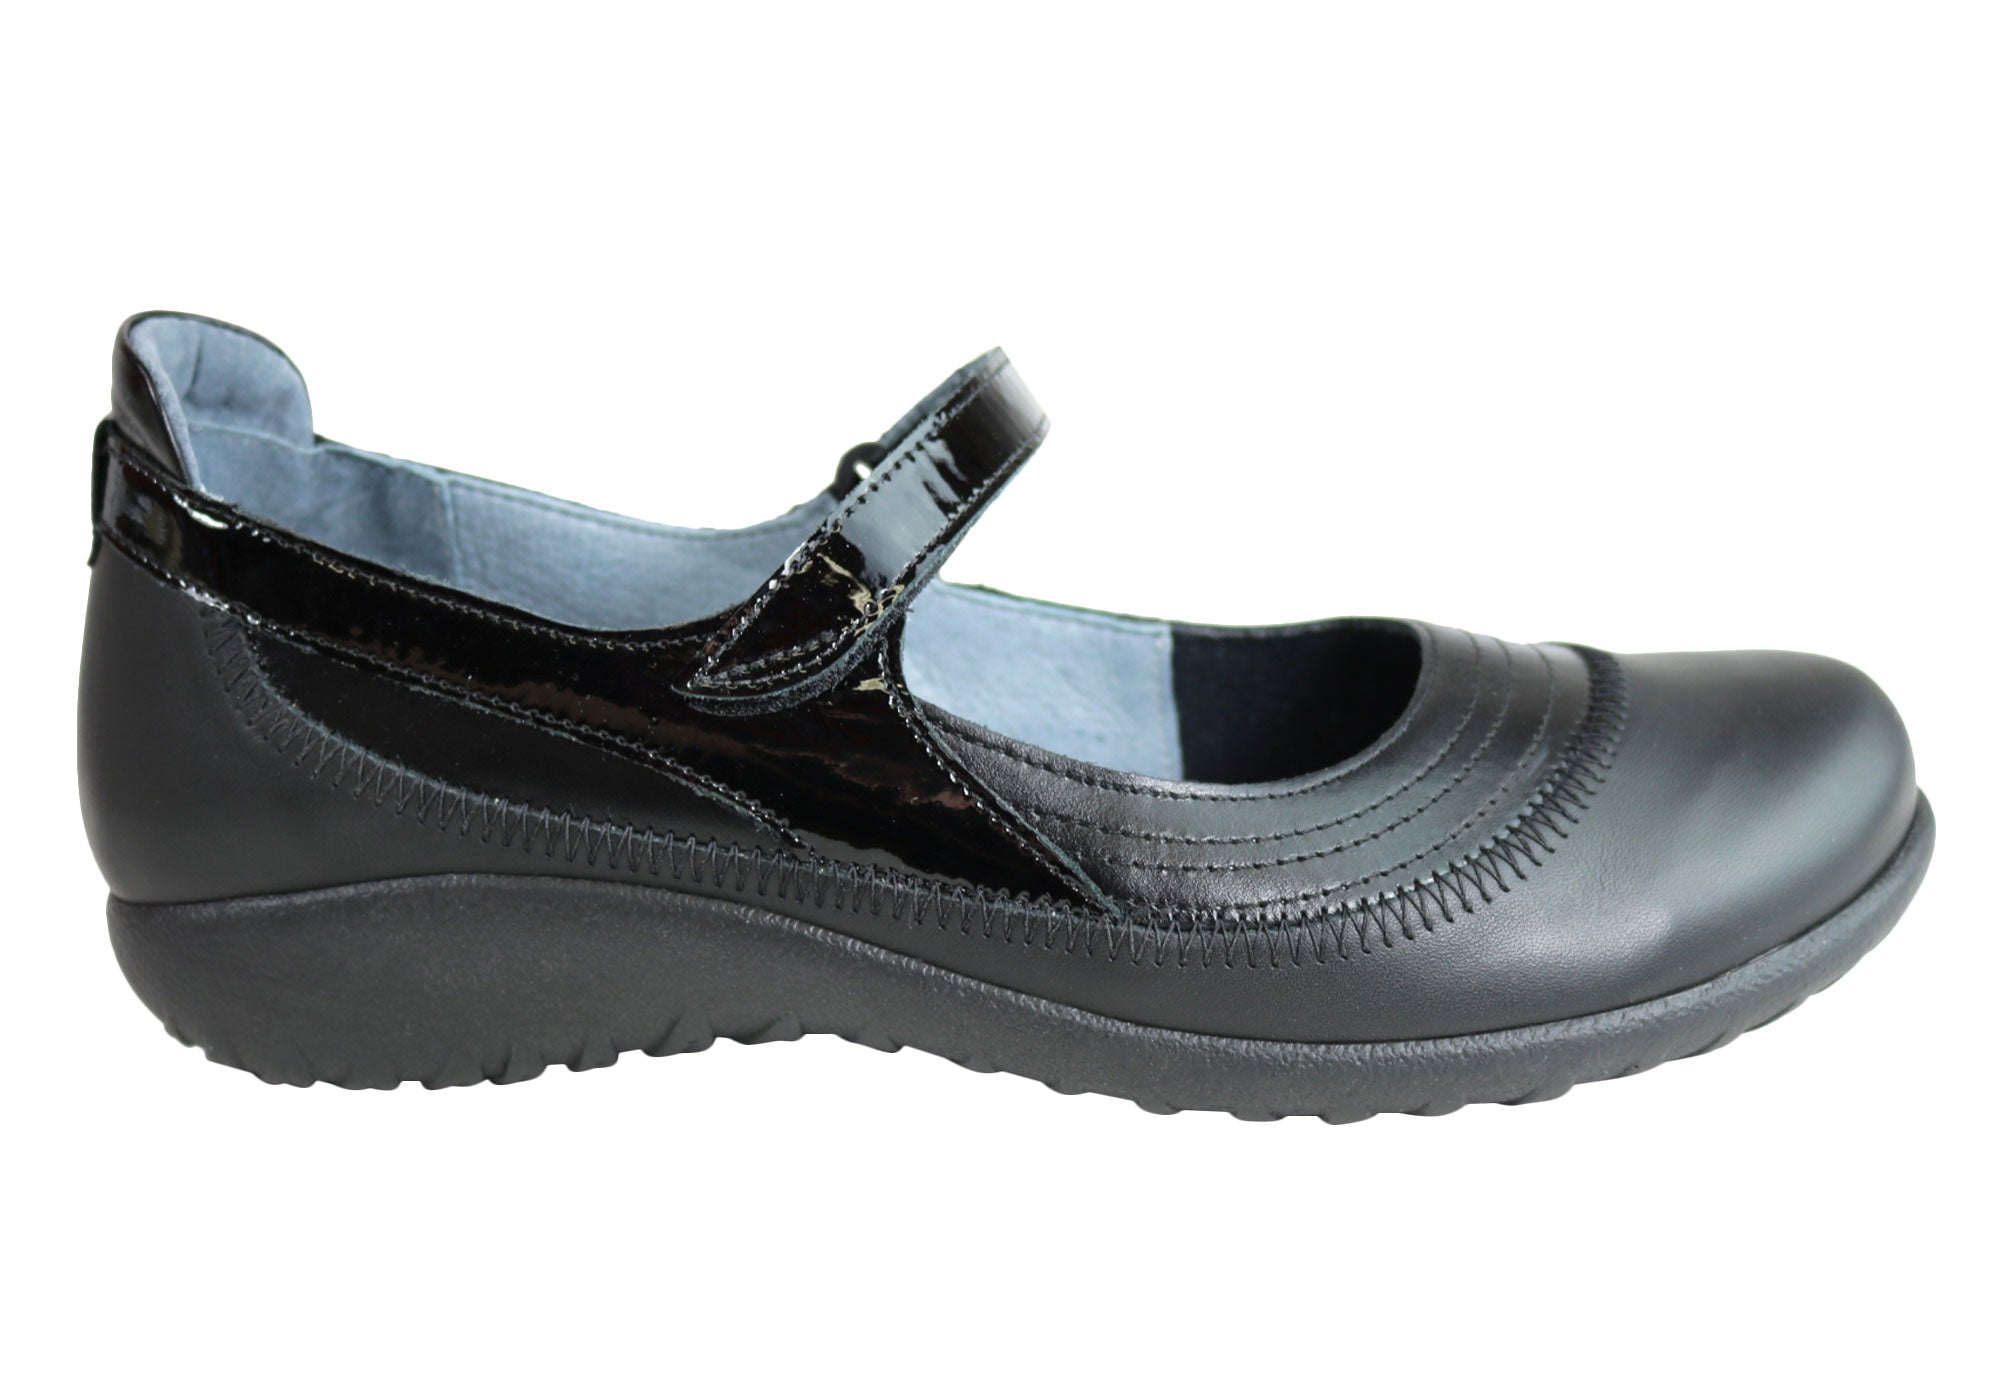 9056d7deab49 Image is loading New-Naot-Kirei-Womens-Comfort-Cushioned-Orthotic-Friendly-